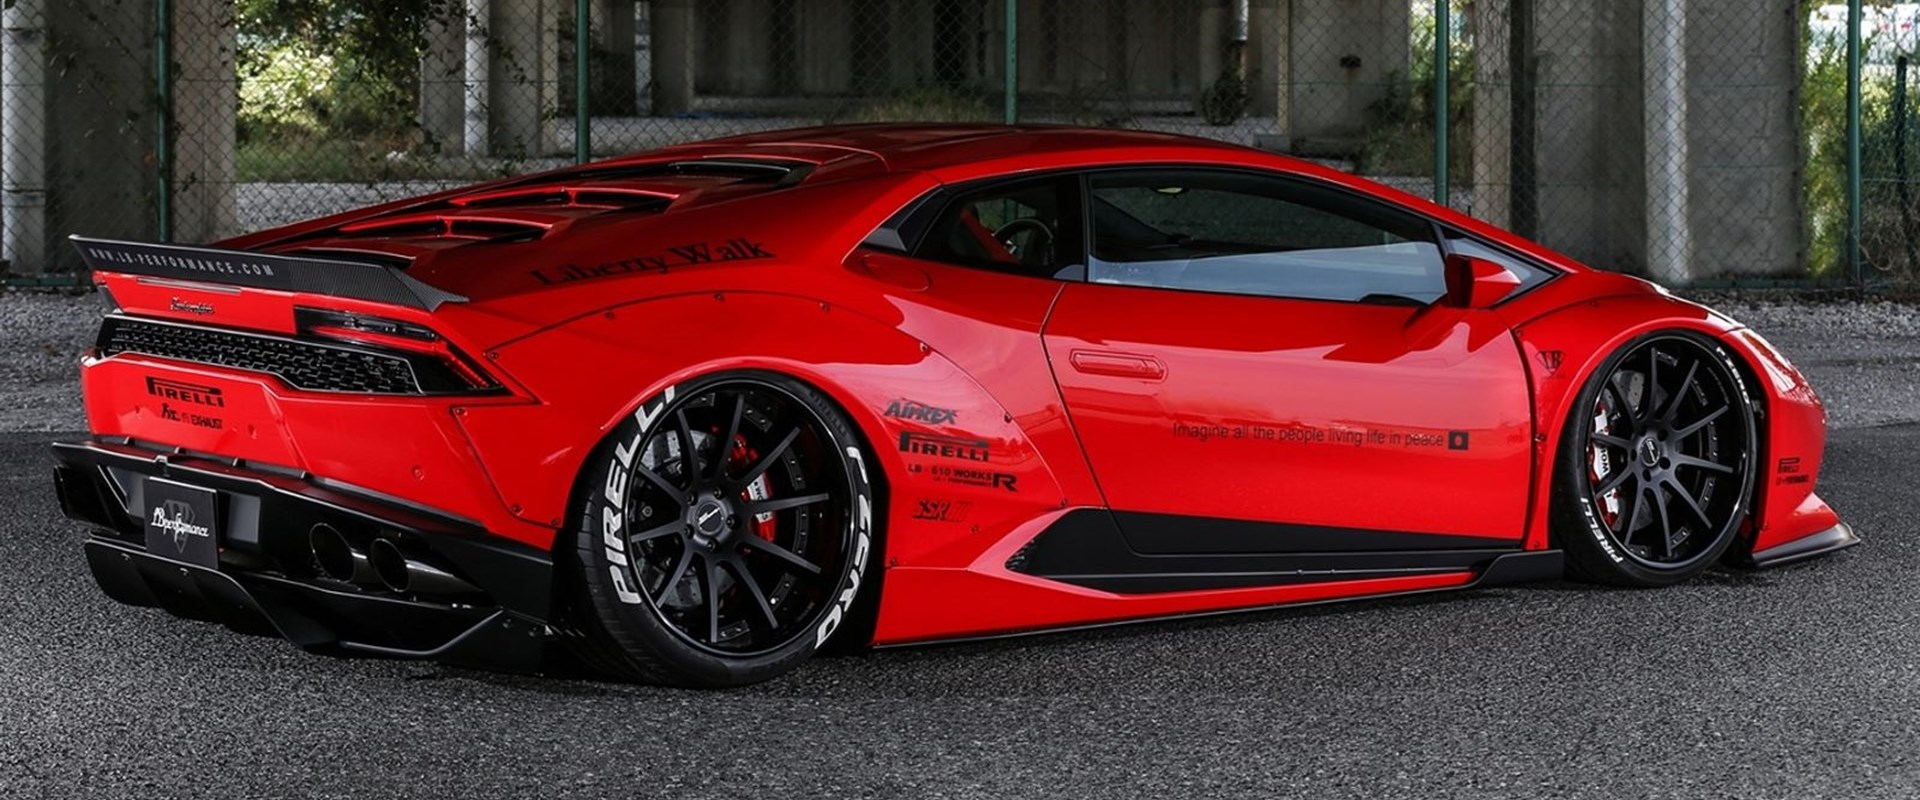 Honda Nsx Price >> 10 Liberty Walk Creations You're Going To Love Or Hate - CarBuzz